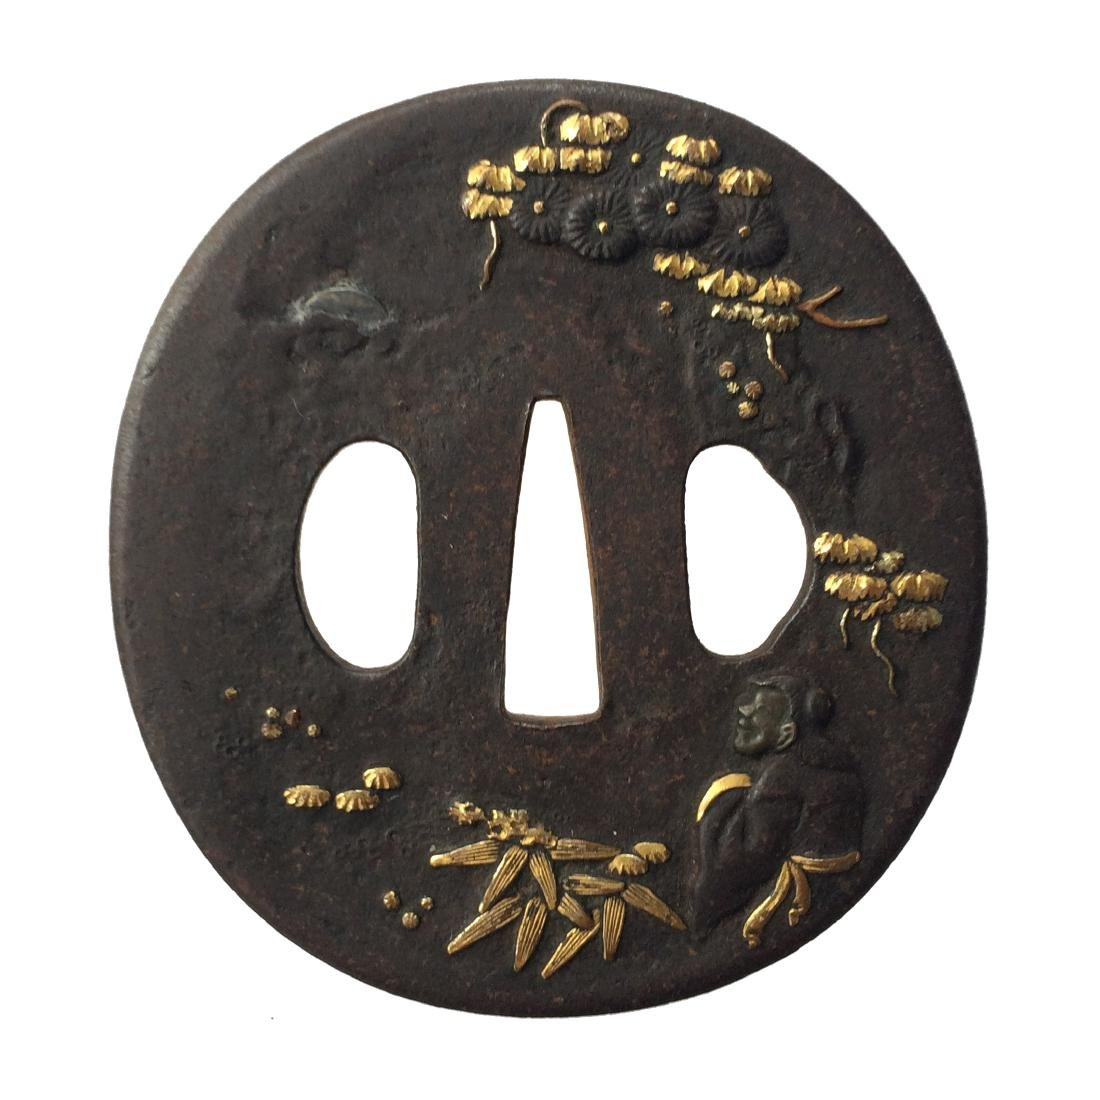 Iron tsuba carved and inlaid with shibuichi and gold